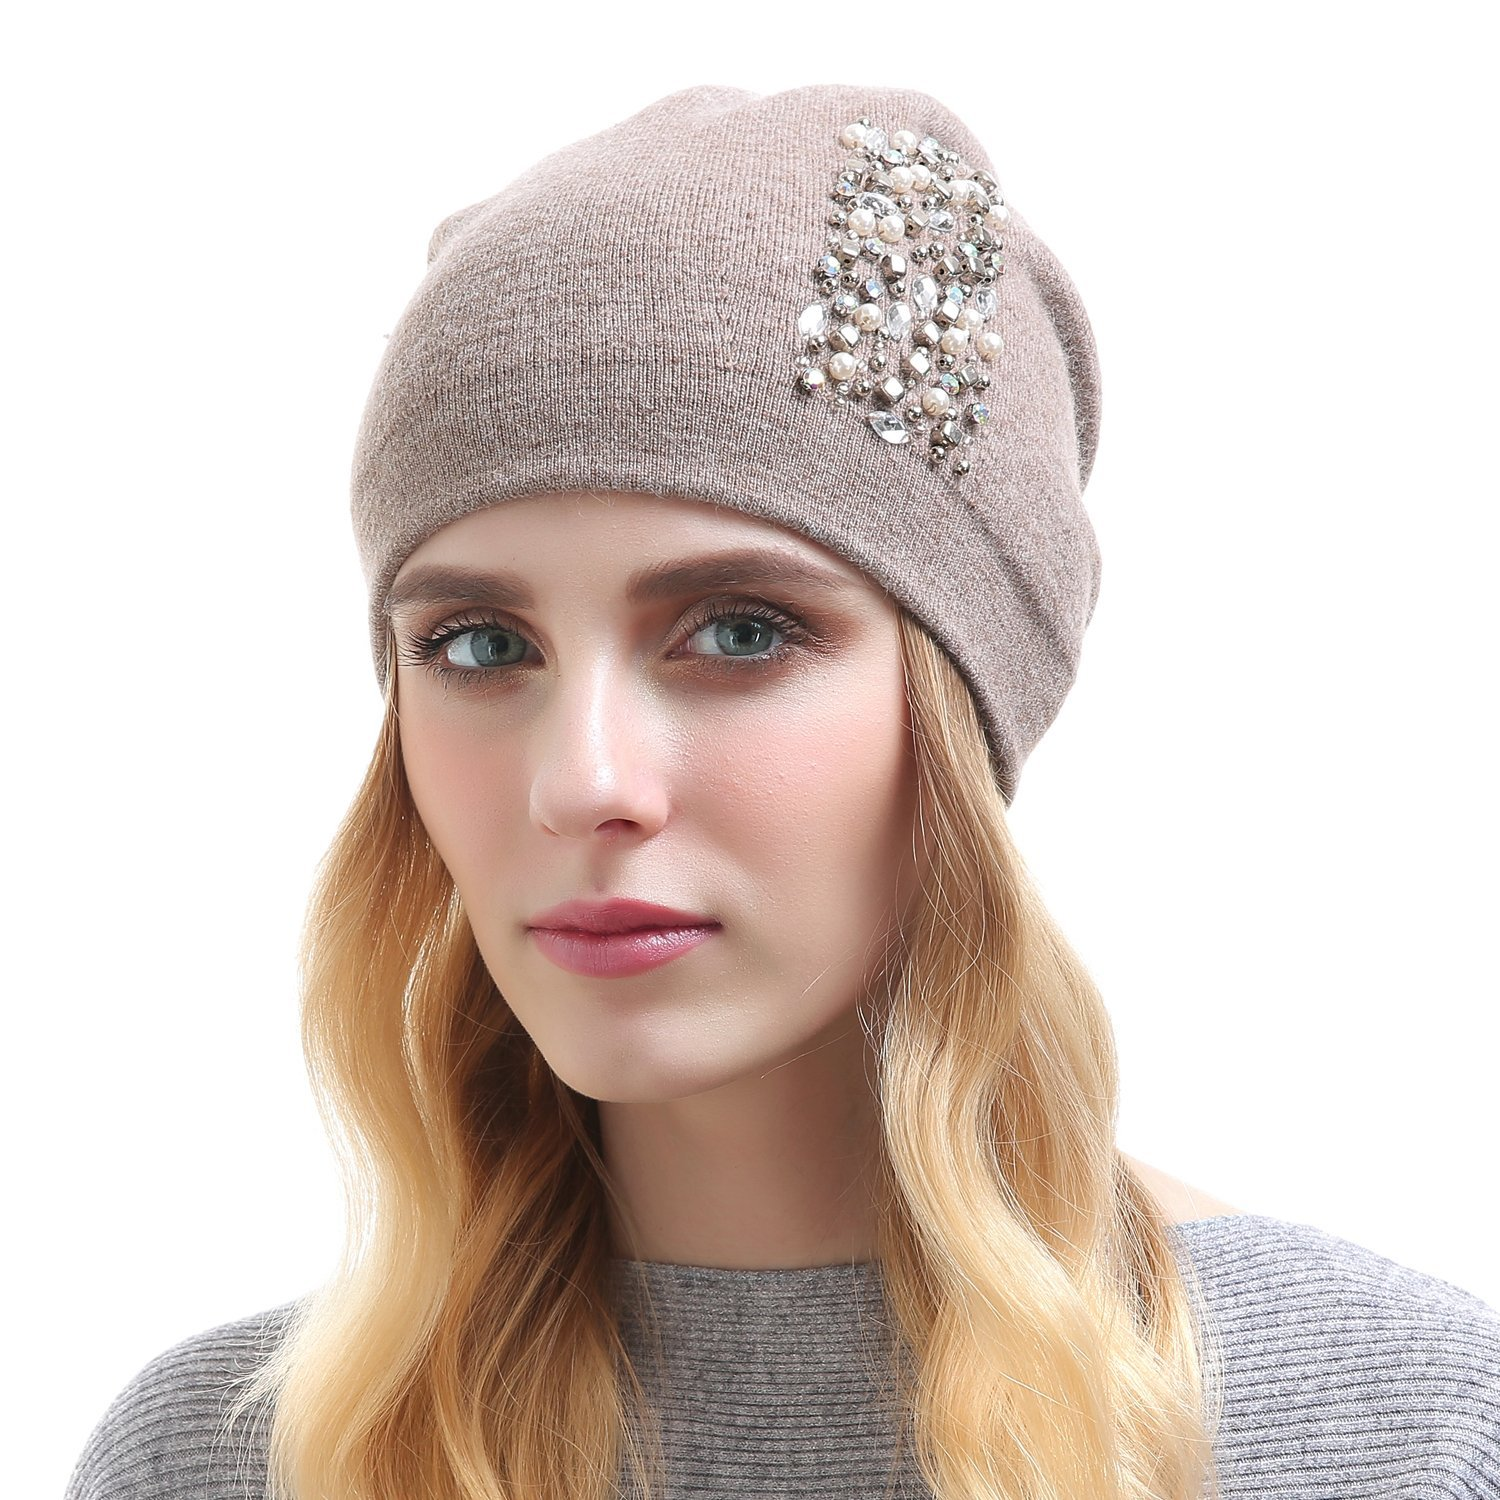 d7dafc9dc9680e Get Quotations · QUEENFUR Womens Wool Hat - Winter Cashmere Caps Oversized  Beanies with Rhinestones Ski Hats